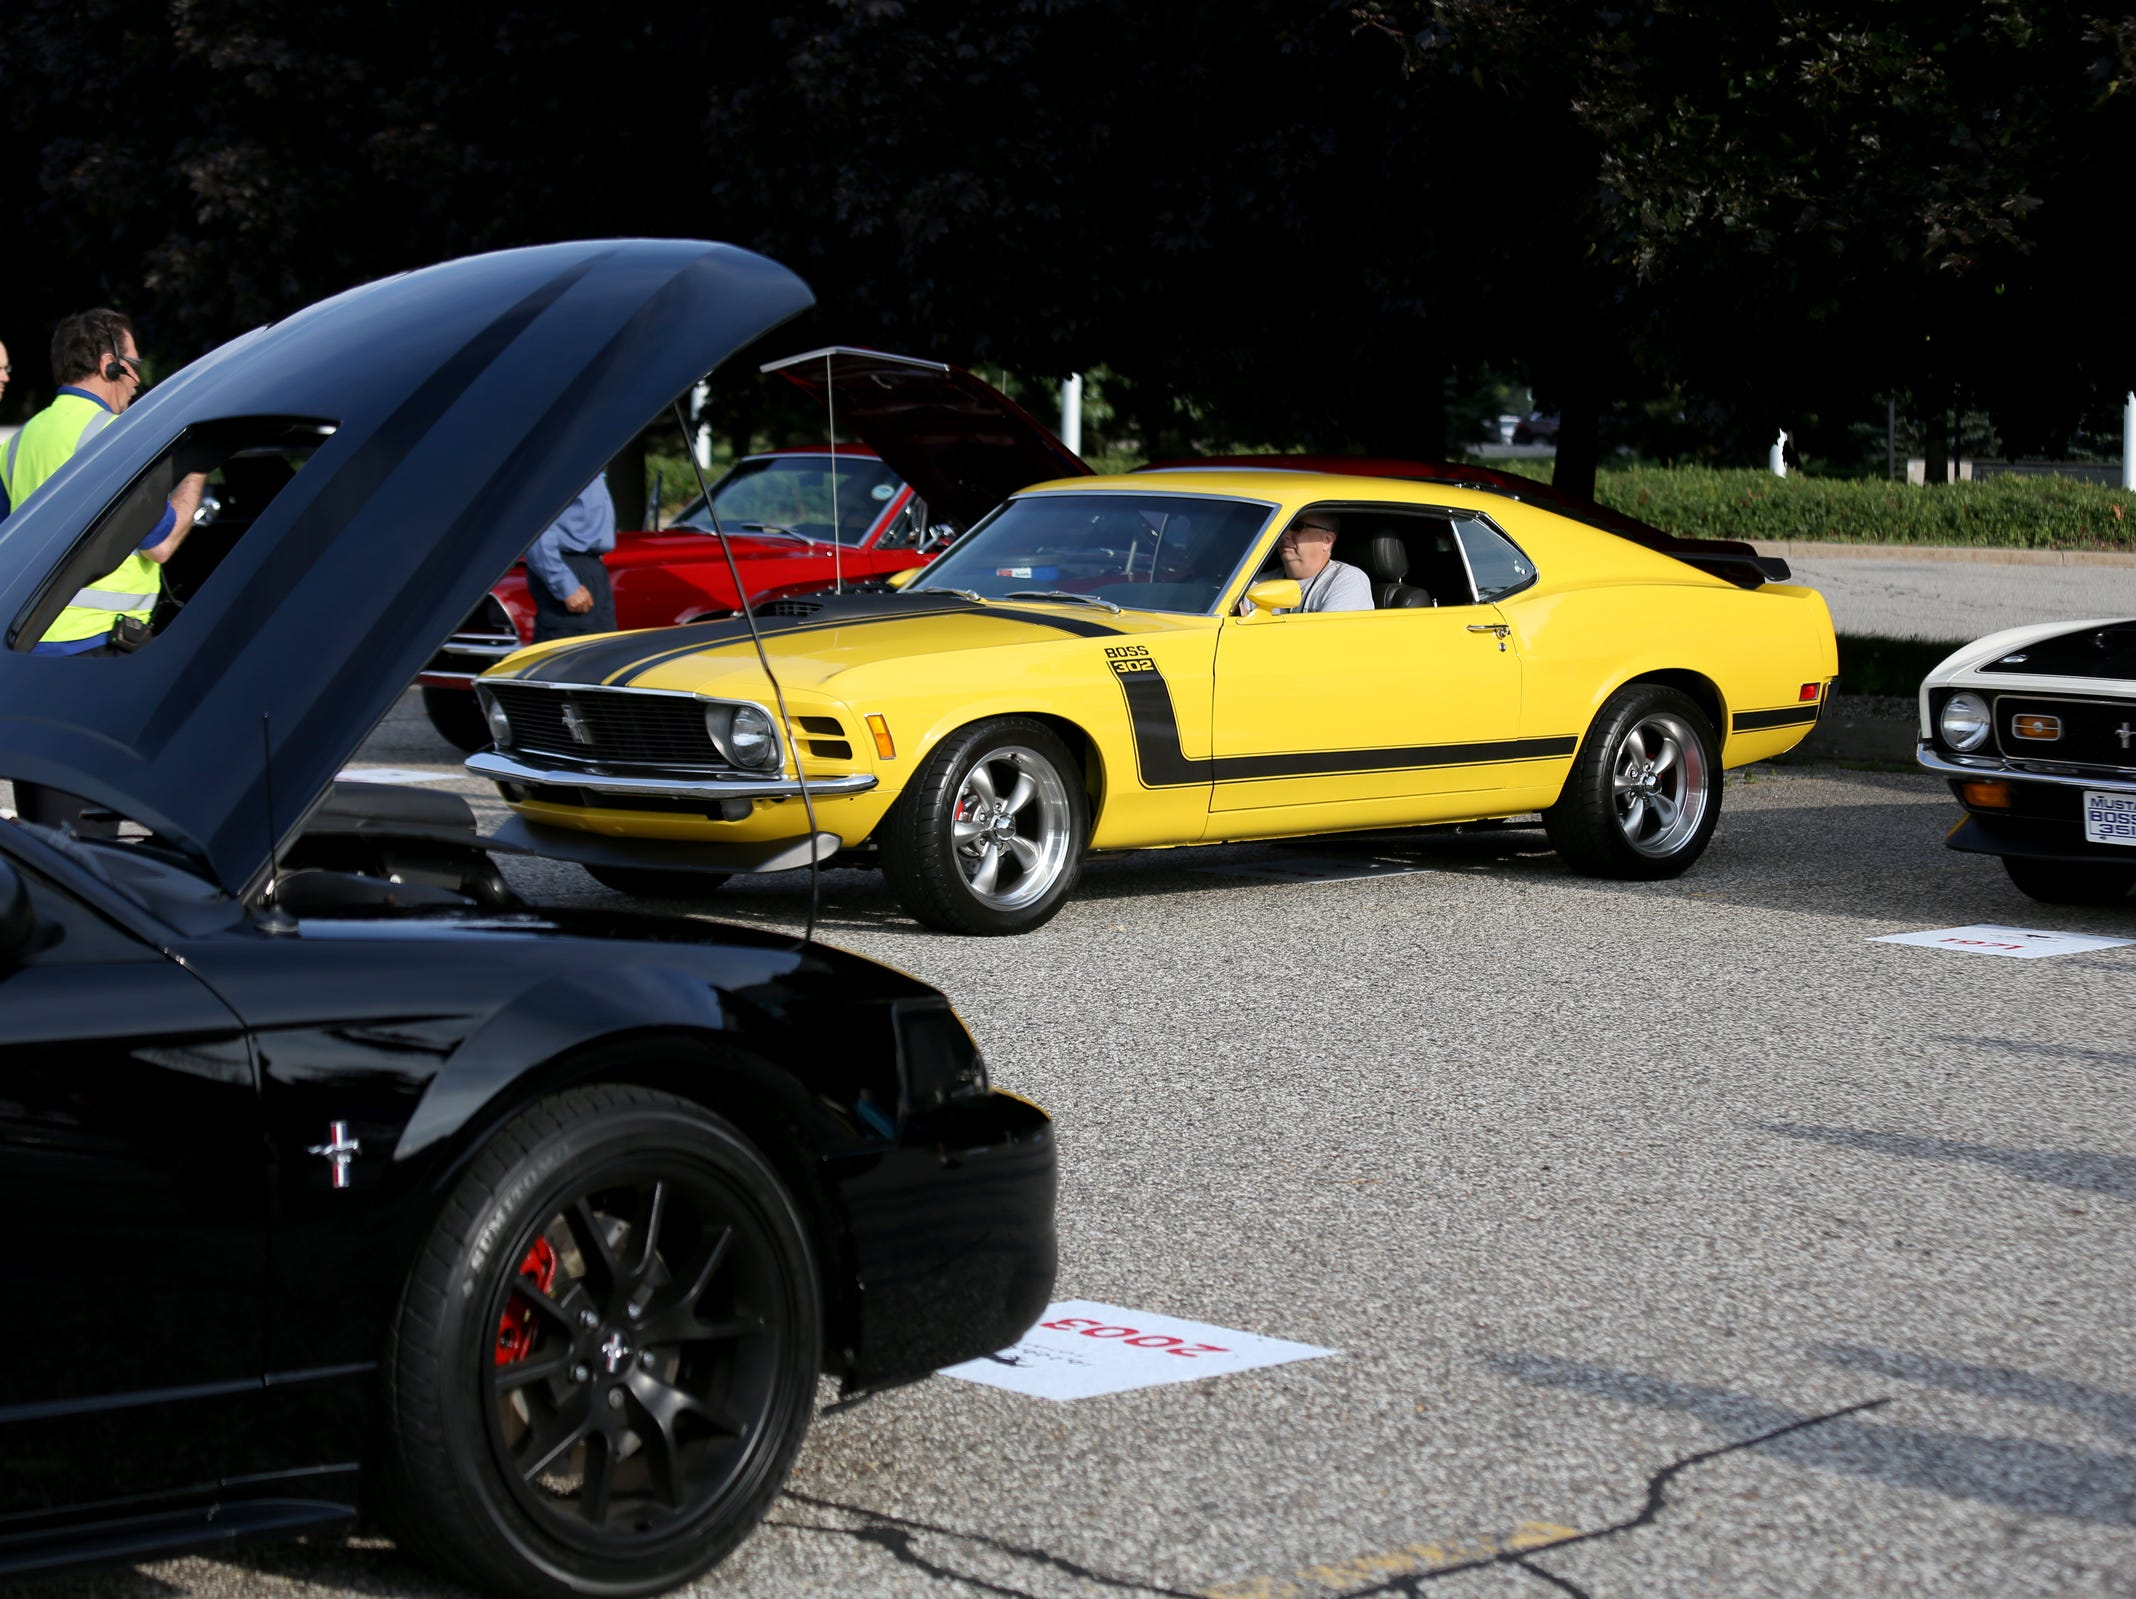 A 1970 Ford Mustang Boss 302 pulls into a spot, during a Ford event celebrating the 10,000,000 Mustang built at the Ford Motor Company World Headquarters in Dearborn on Wed., Aug 8, 2018.